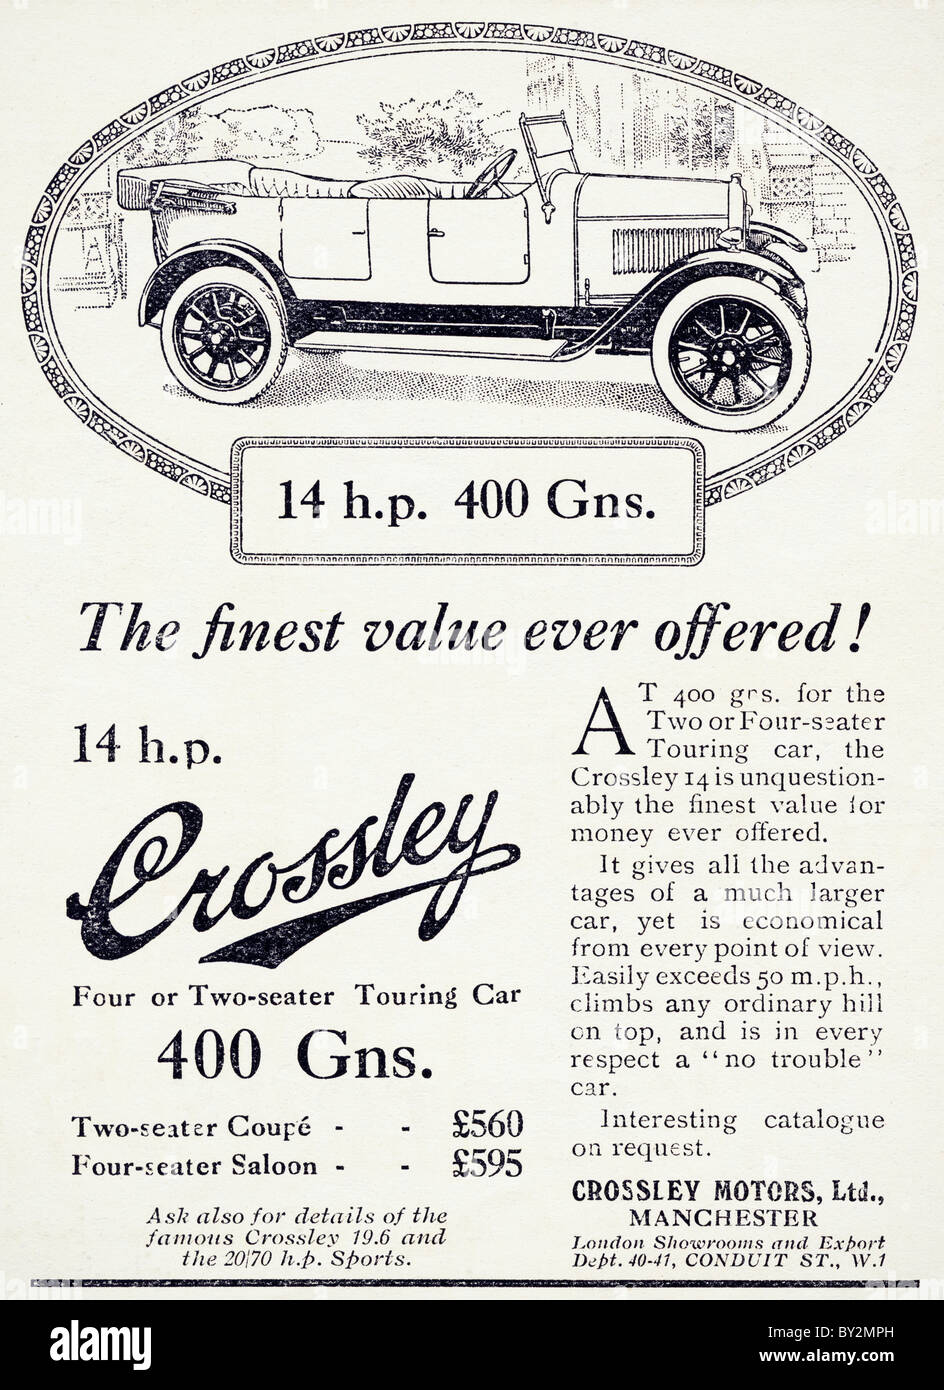 Original advert for Crossley Motors Ltd 14 h.p. car manufactued from 1922 to 1927 in Manchester England UK - Stock Image